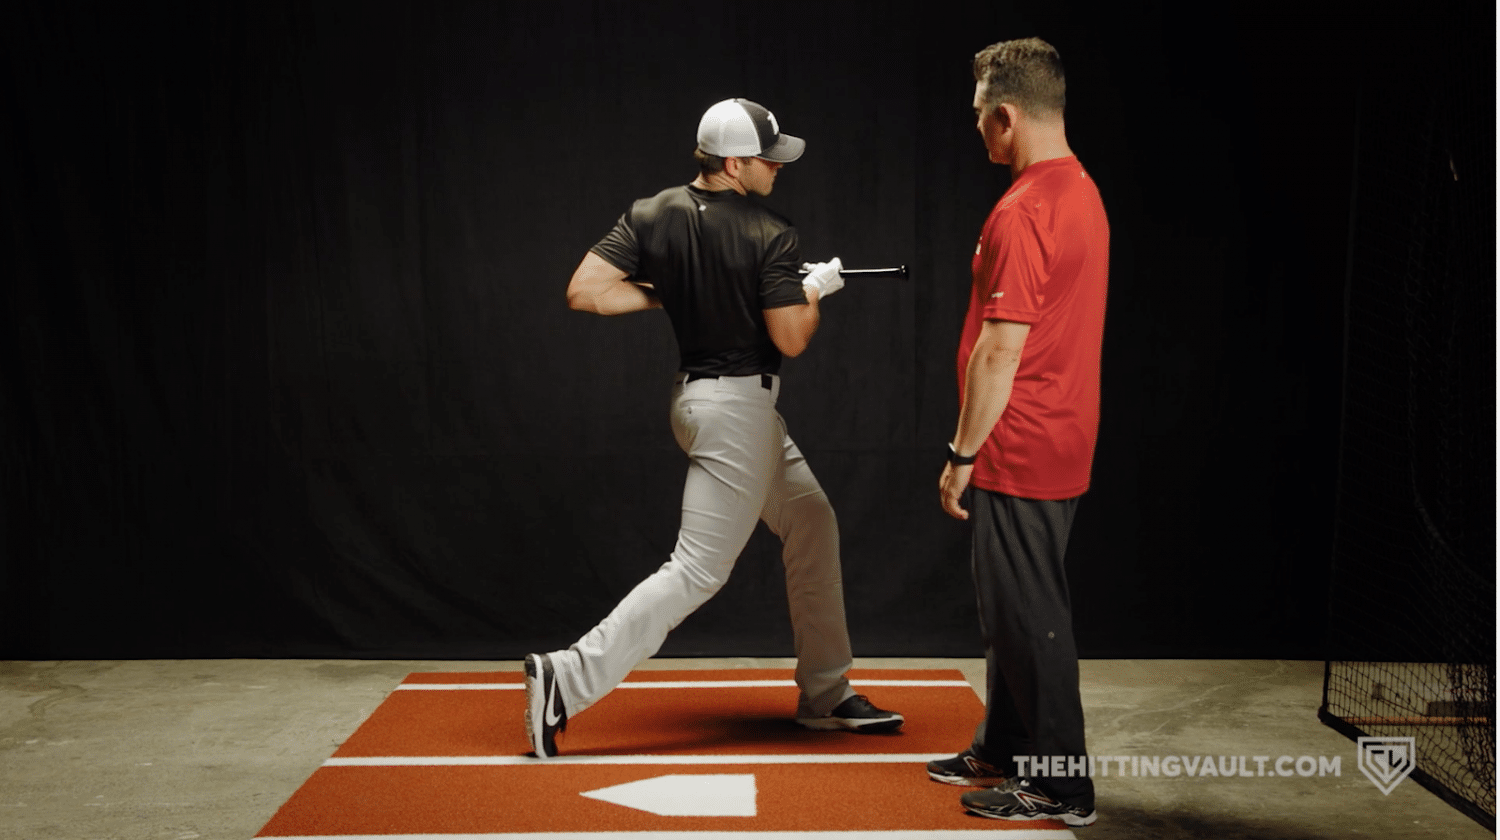 The Full Turn Drill - end of the swing